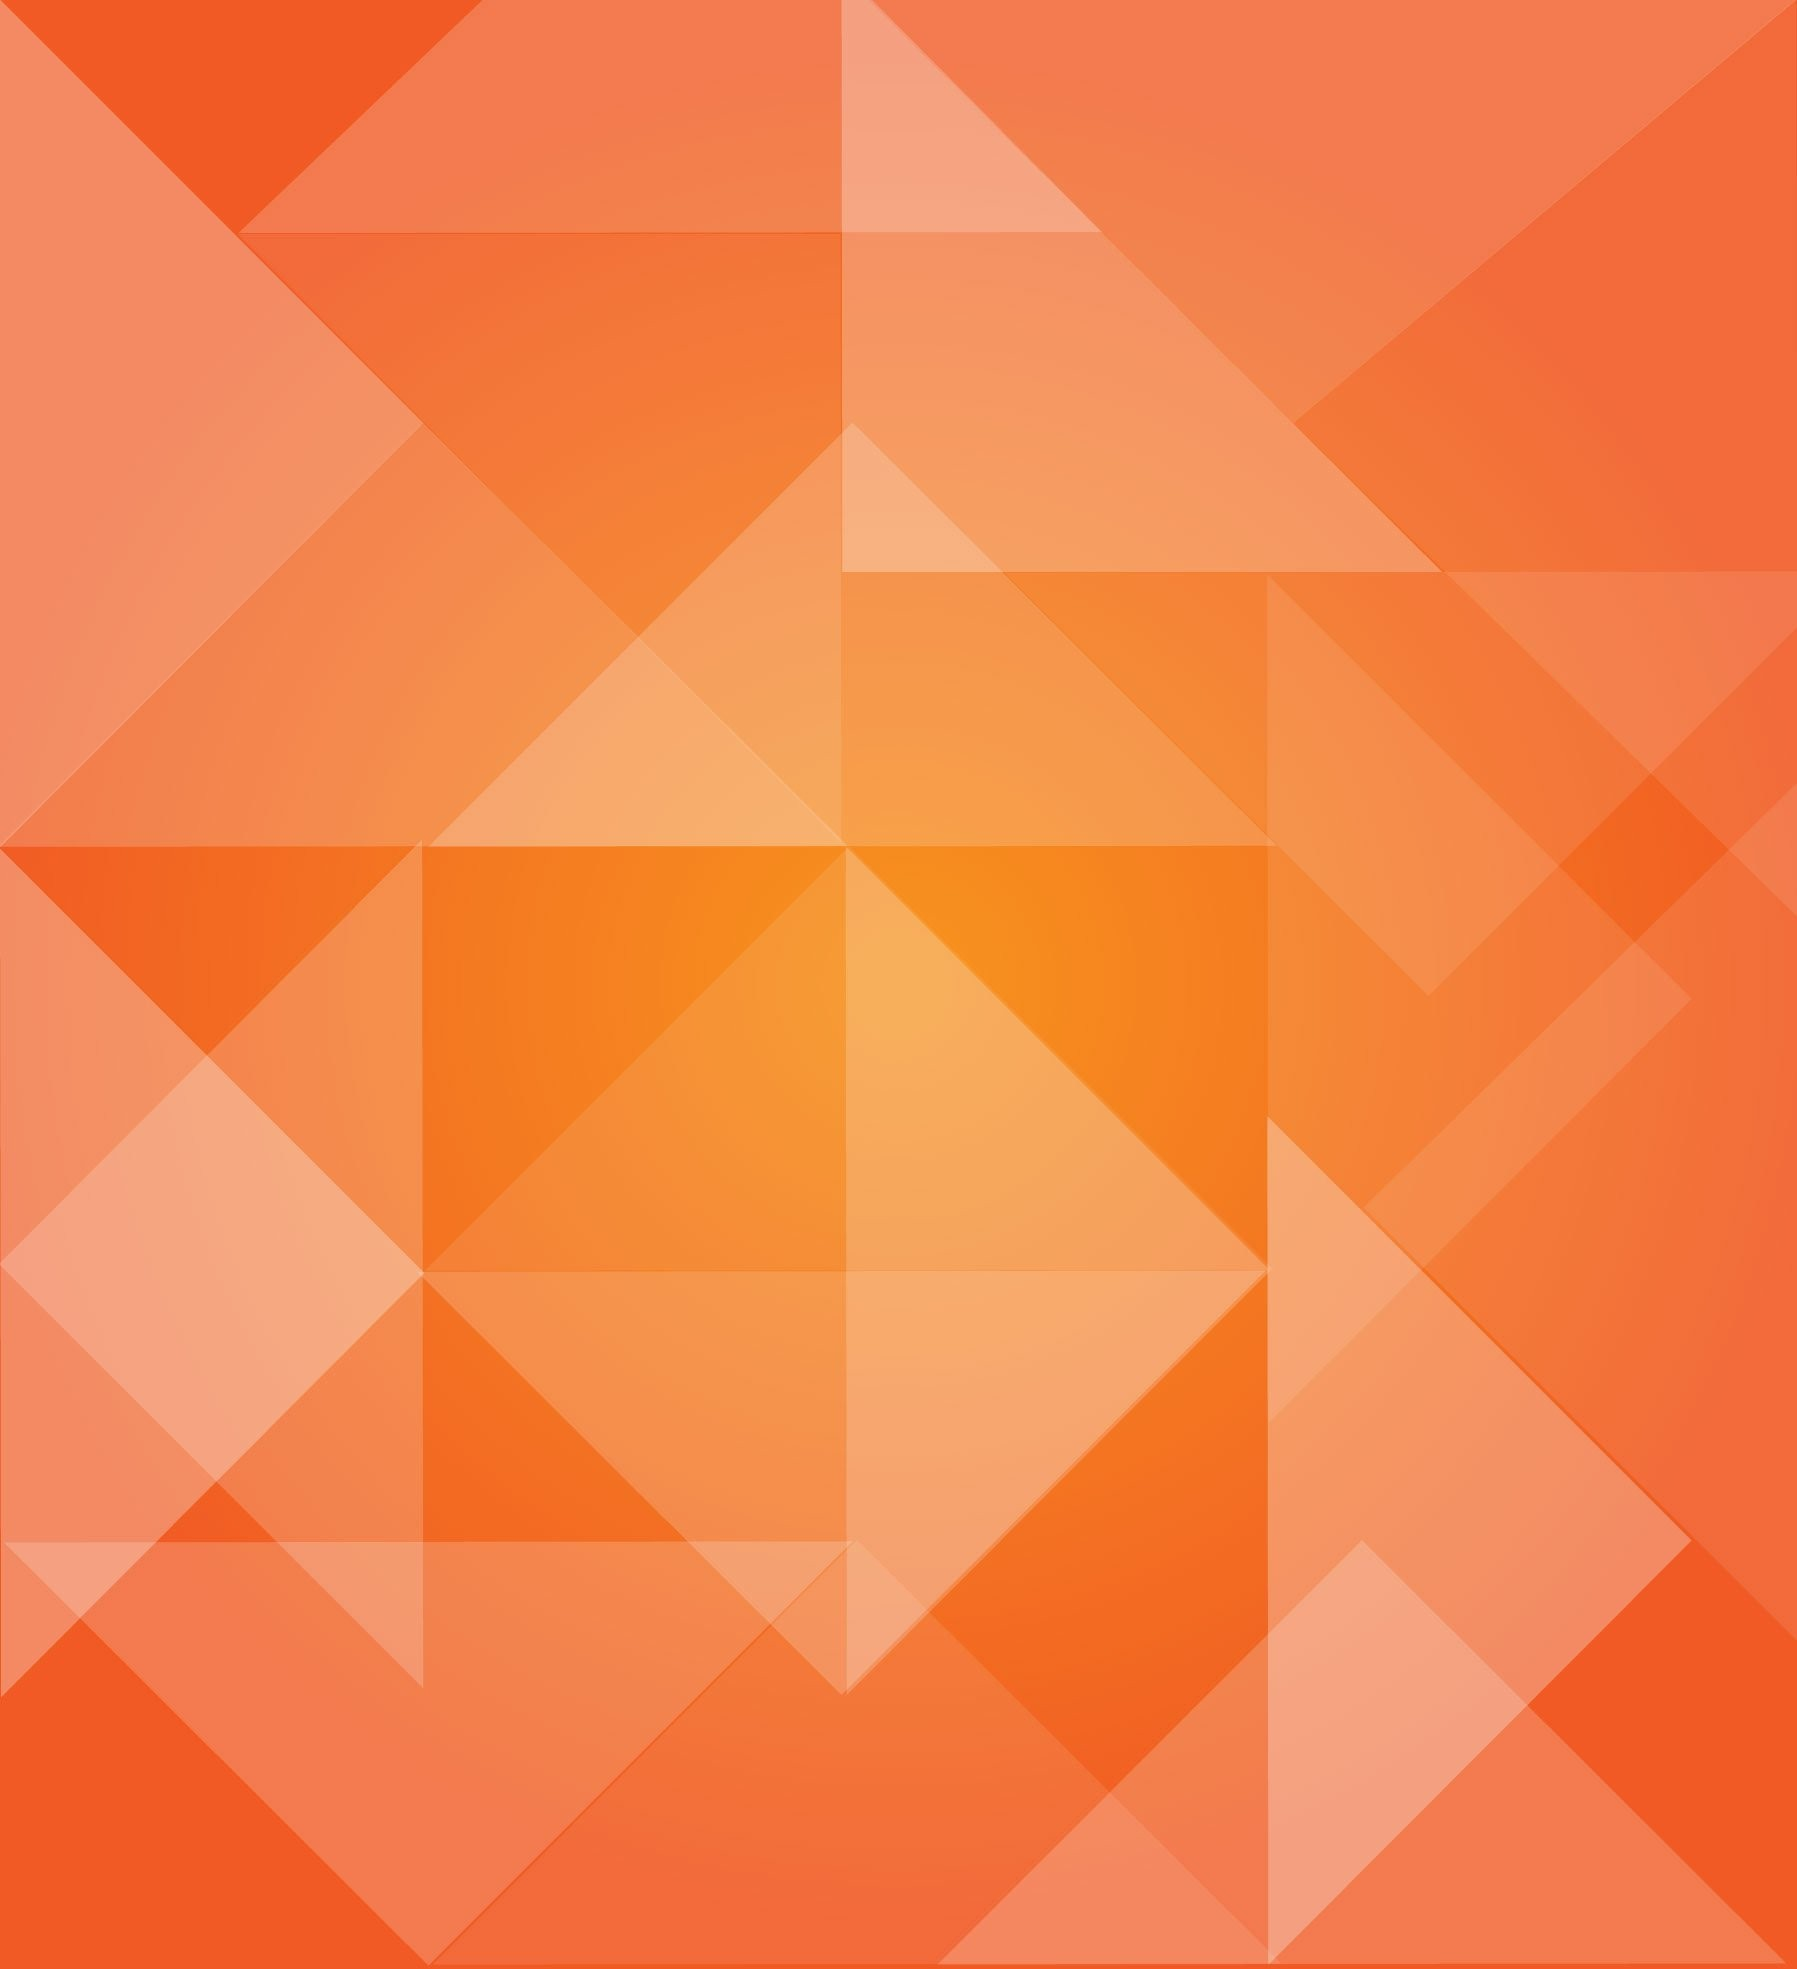 Orange background download free hd backgrounds for for Orange mobel